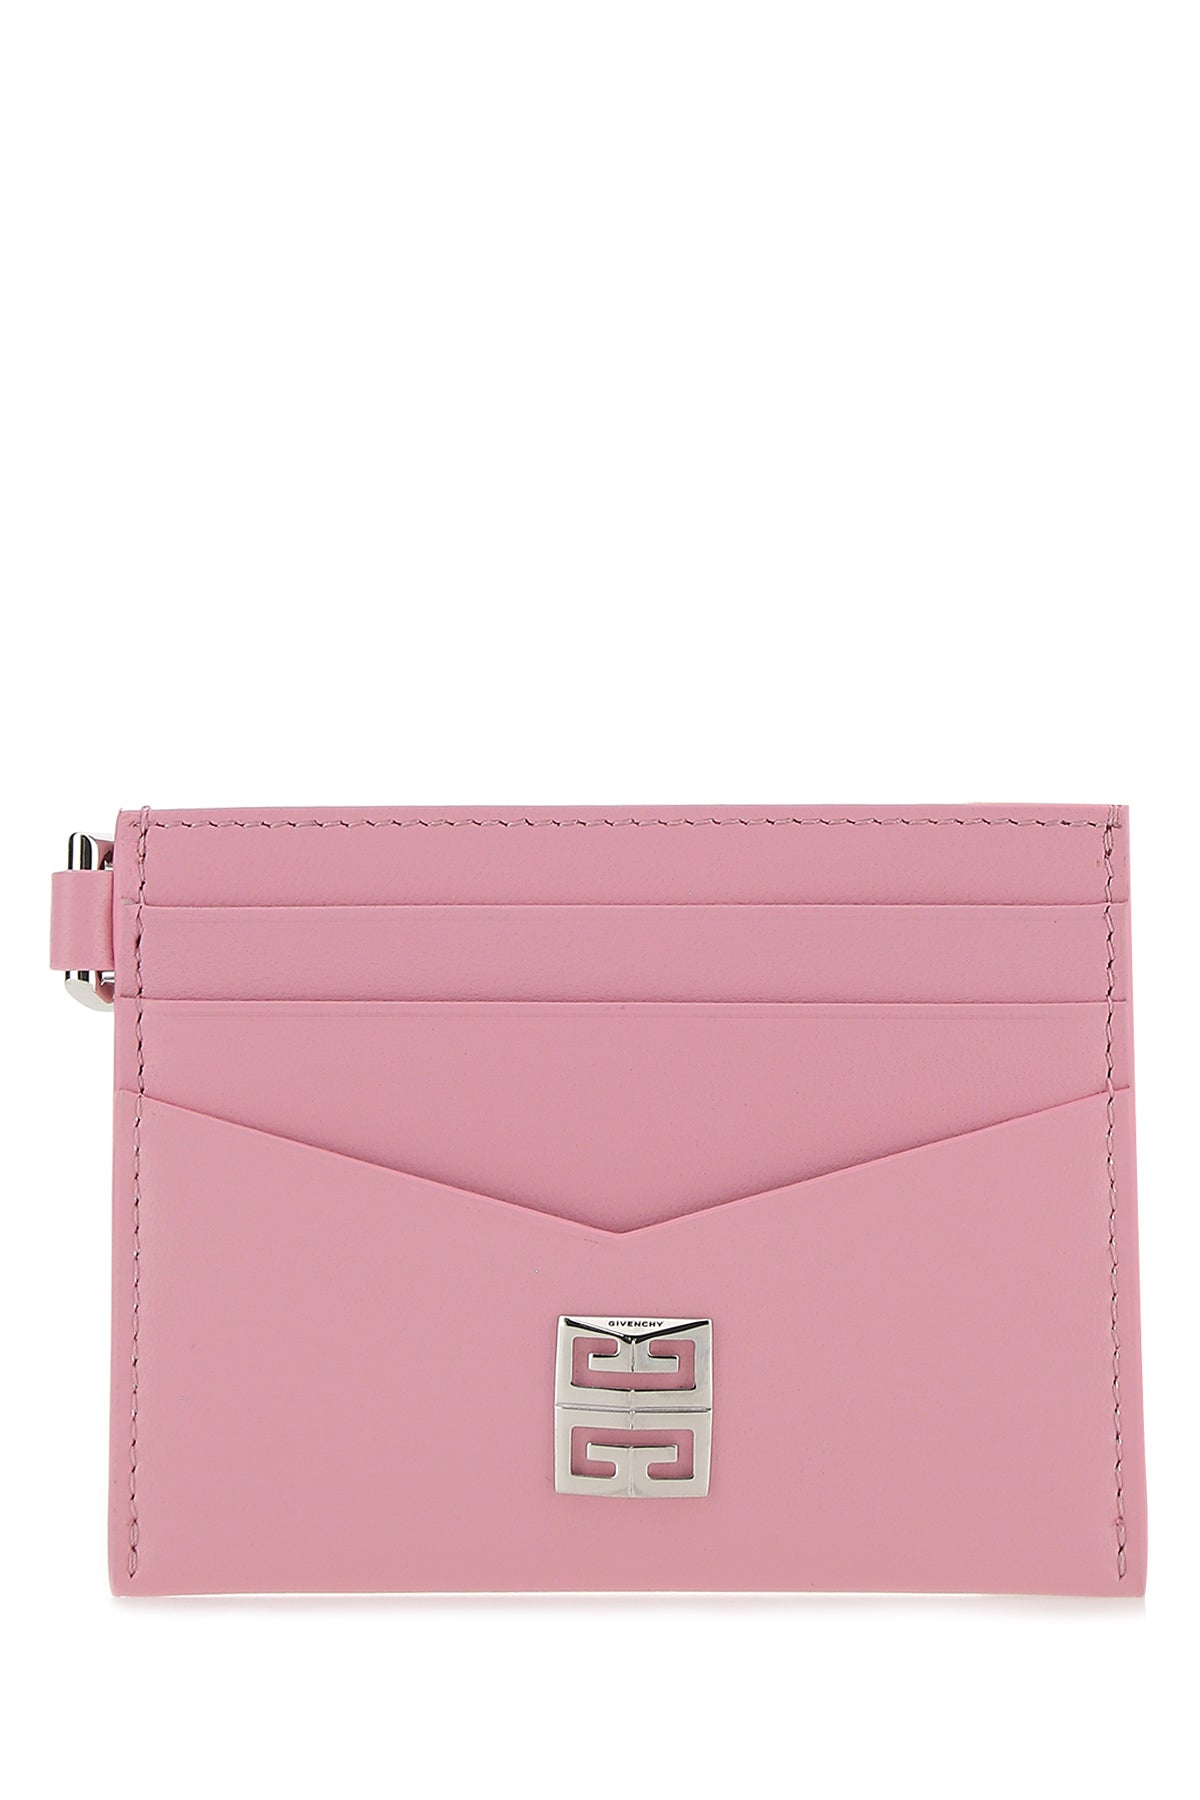 Givenchy 4g Plaque Cardholder In Pink